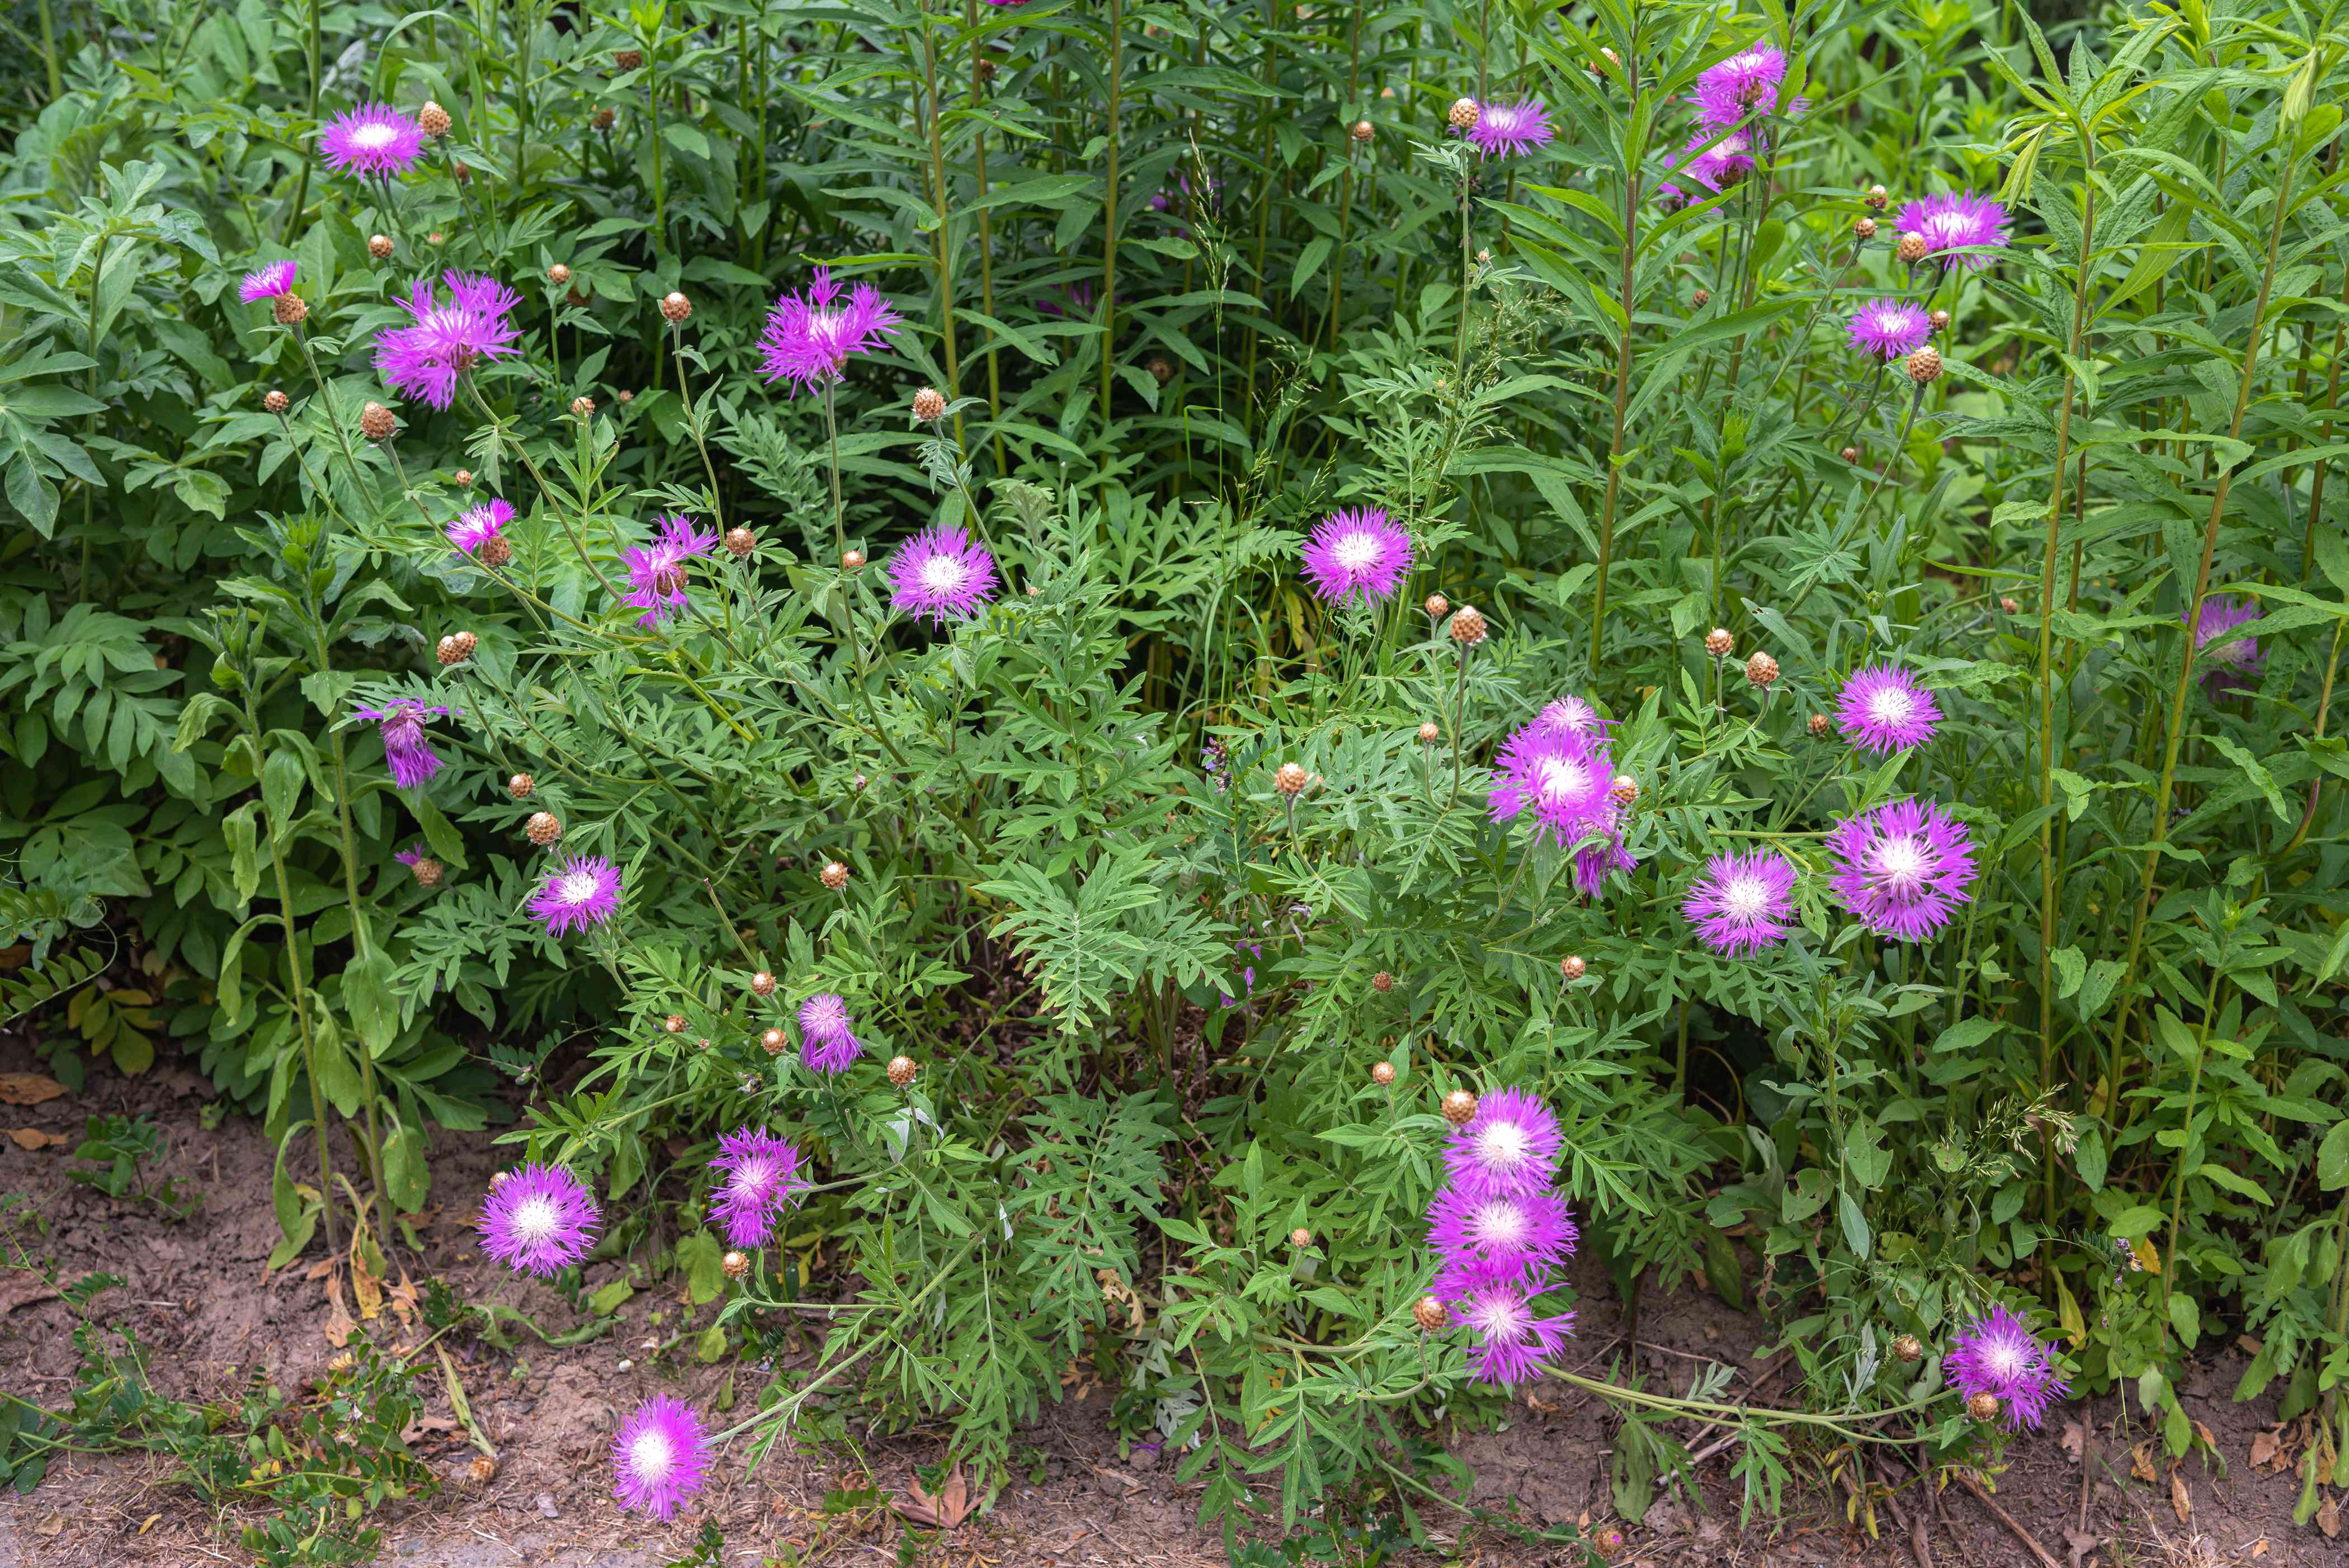 Basket flowers with bright purple petals on tall stems surrounding fern-like leaves